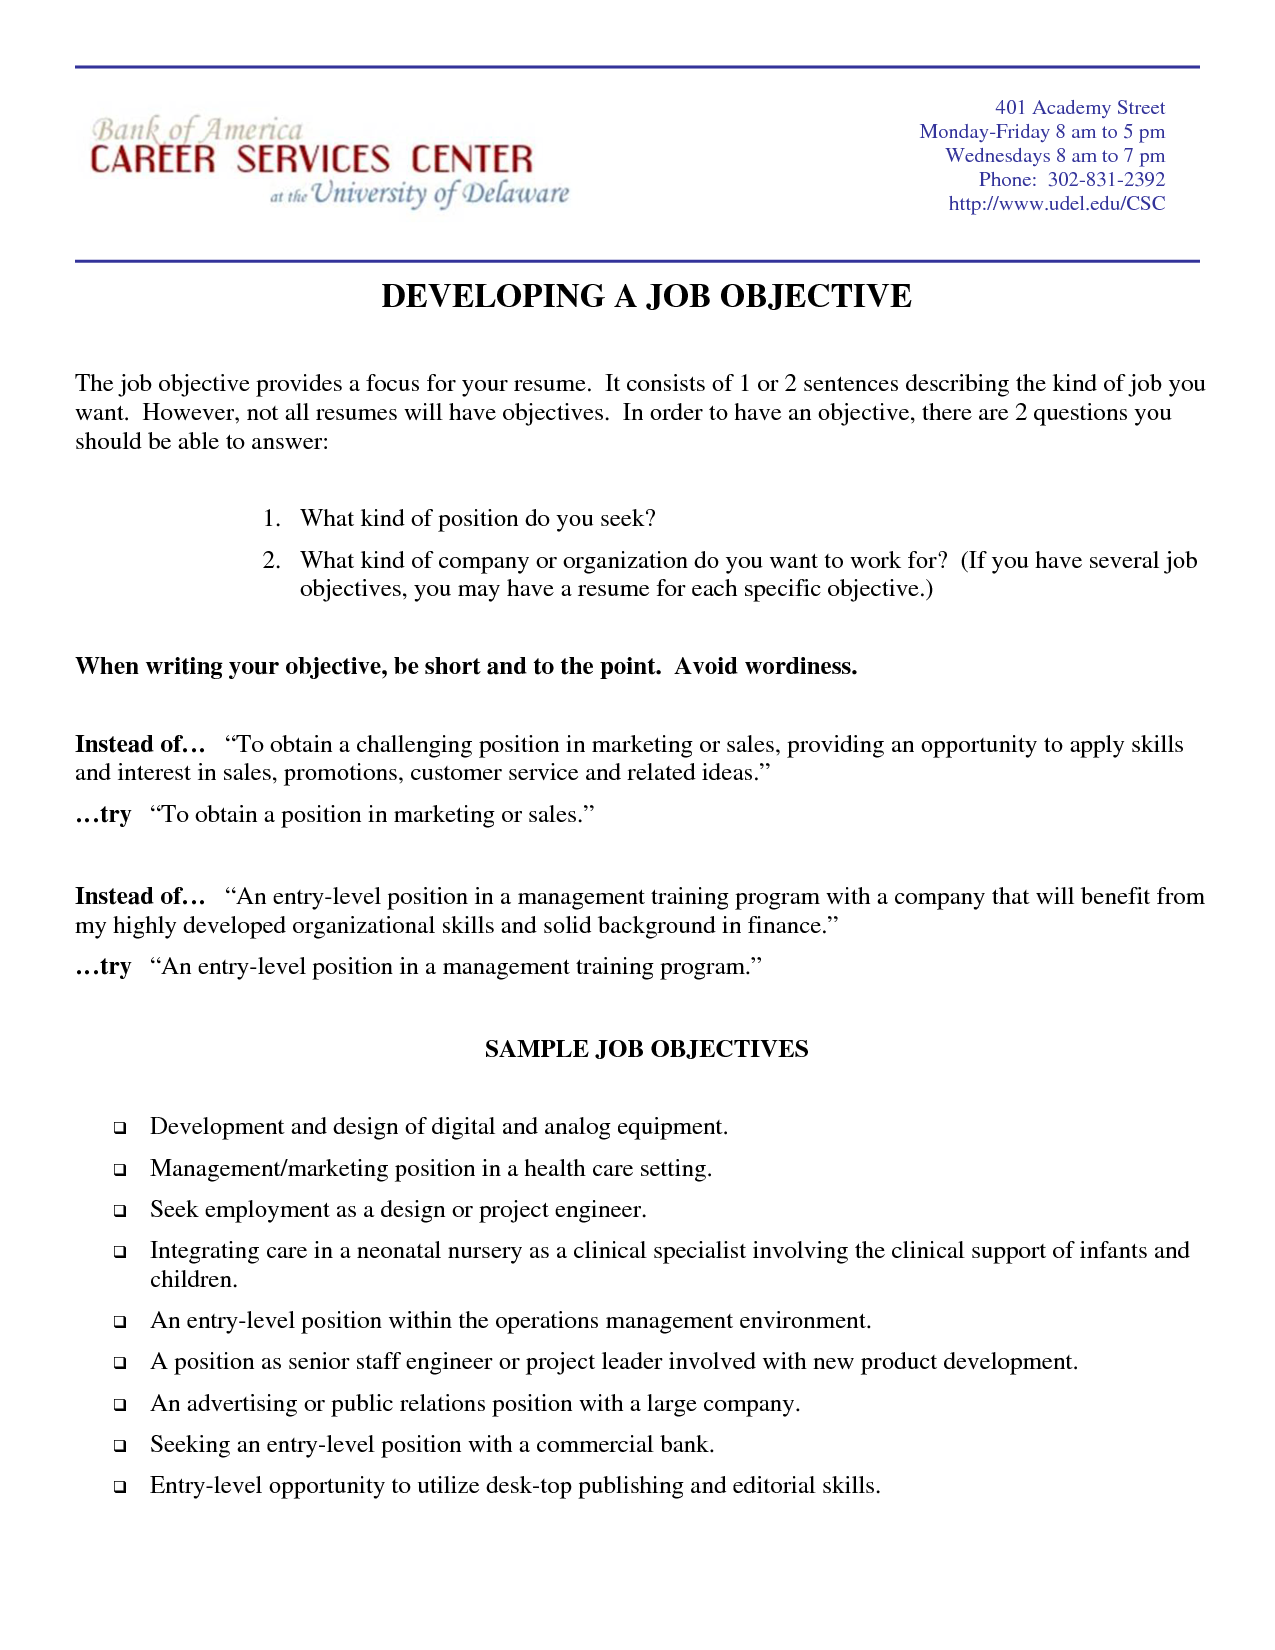 Summary Statement Resume Examples Marketing Resume Objective Samples Resumes Design The Relic